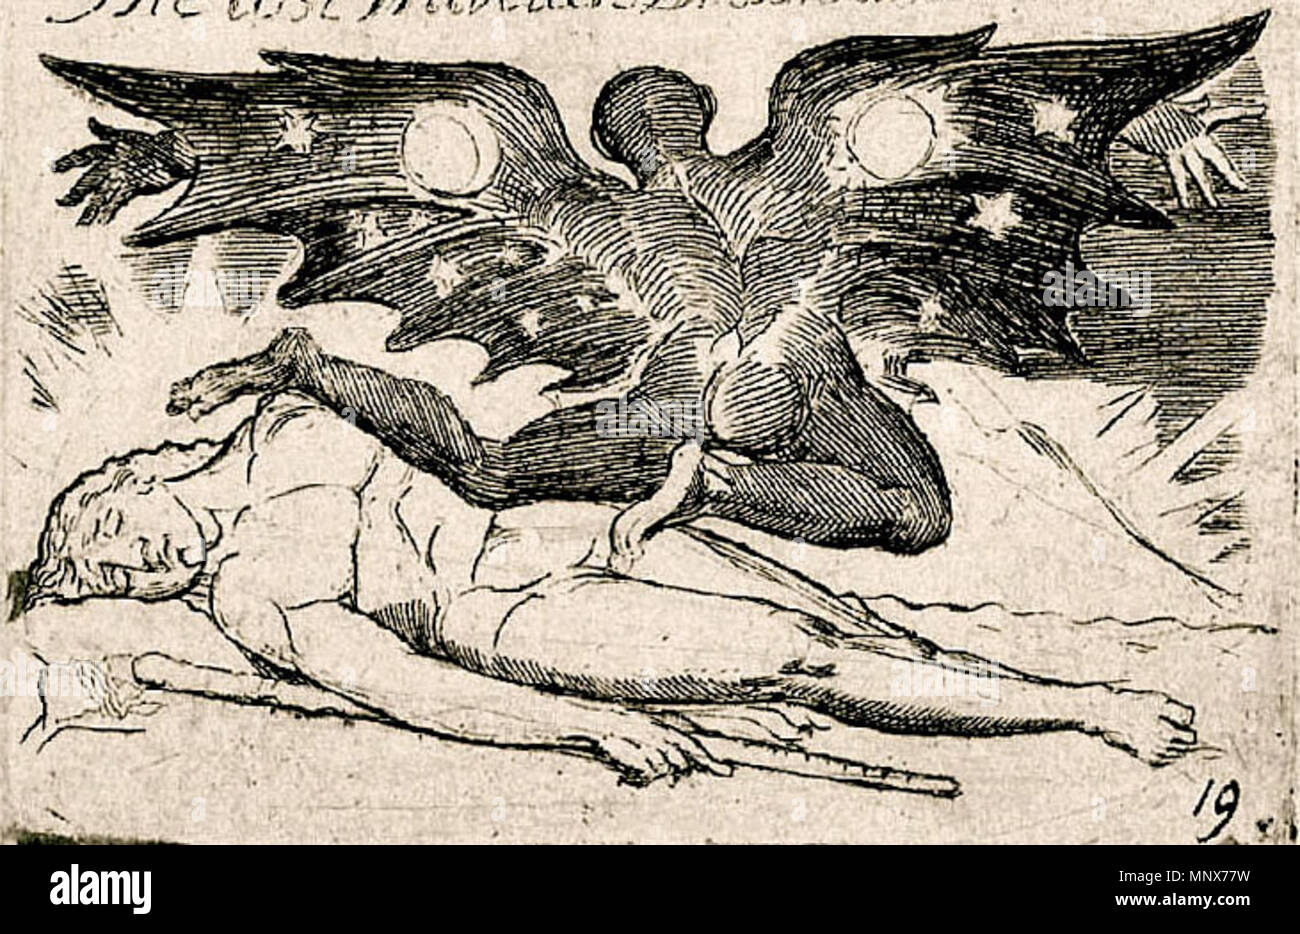 . Blake's To the Accuser, from The Gates of Paradise, with the text cropped out. uncertain, will check Essick's 'William Blake, Printmaker' when I get the chance.   William Blake (1757–1827)   Alternative names W. Blake; Uil'iam Bleik  Description British painter, poet, writer, theologian, collector and engraver  Date of birth/death 28 November 1757 12 August 1827  Location of birth/death Broadwick Street Charing Cross  Work location London  Authority control  : Q41513 VIAF:54144439 ISNI:0000 0001 2096 135X ULAN:500012489 LCCN:n78095331 NLA:35019221 WorldCat 1197 To the Accuser Cropp - Stock Image